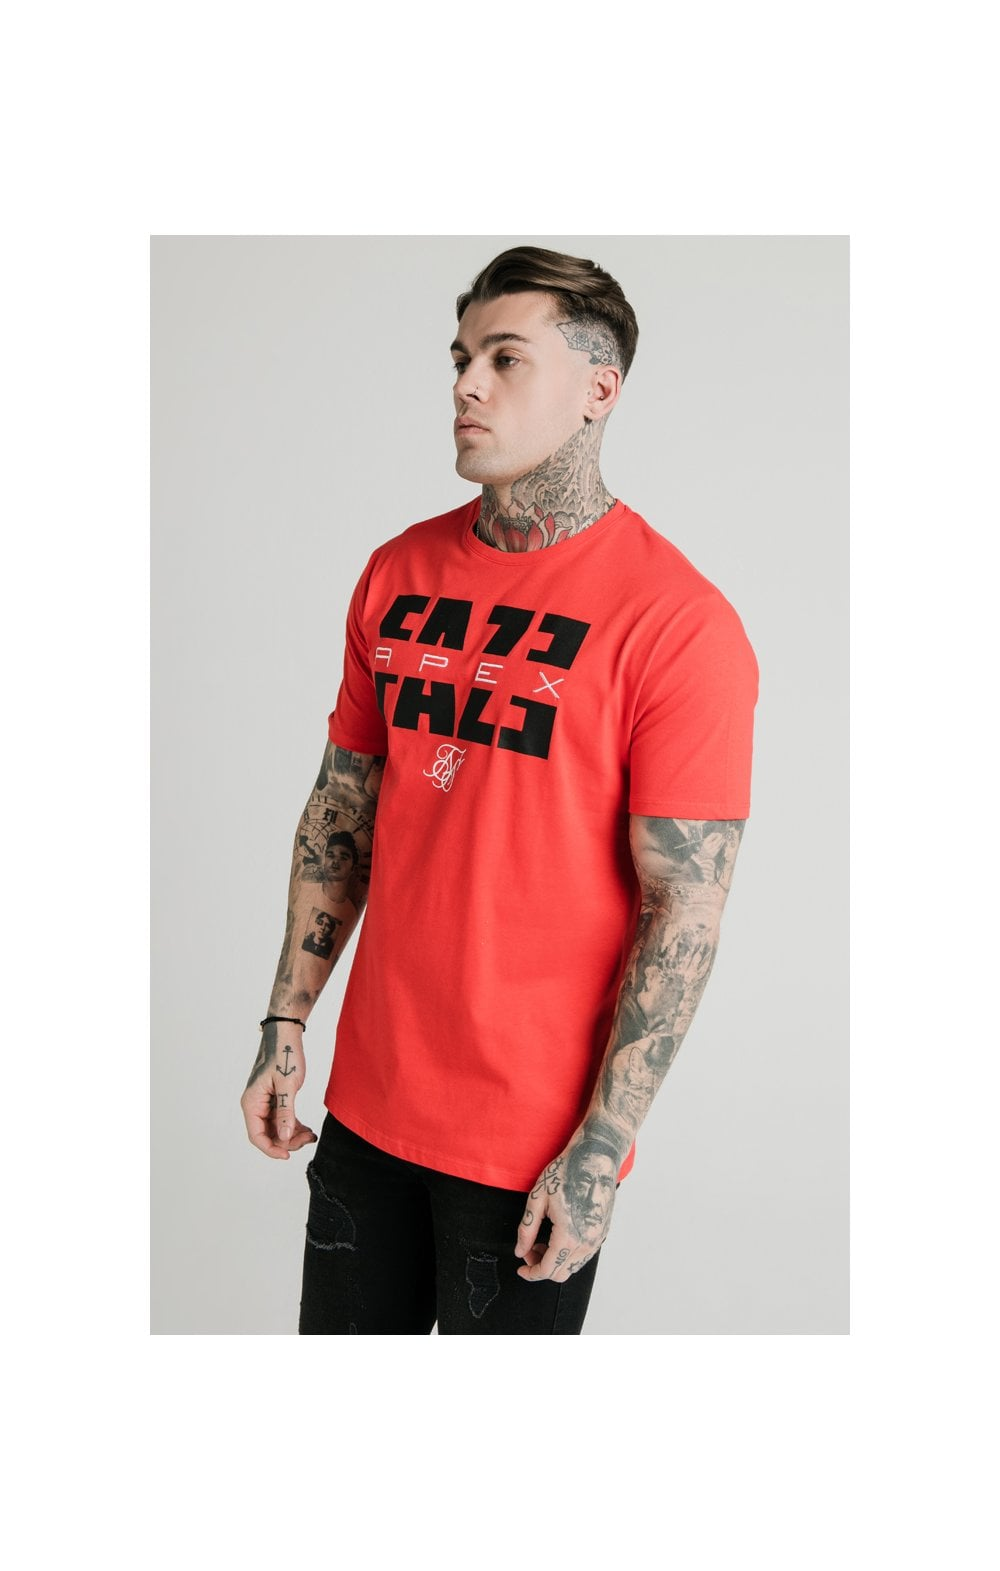 SikSilk x FaZe Apex Standard Square Hem Tee - Red (2)